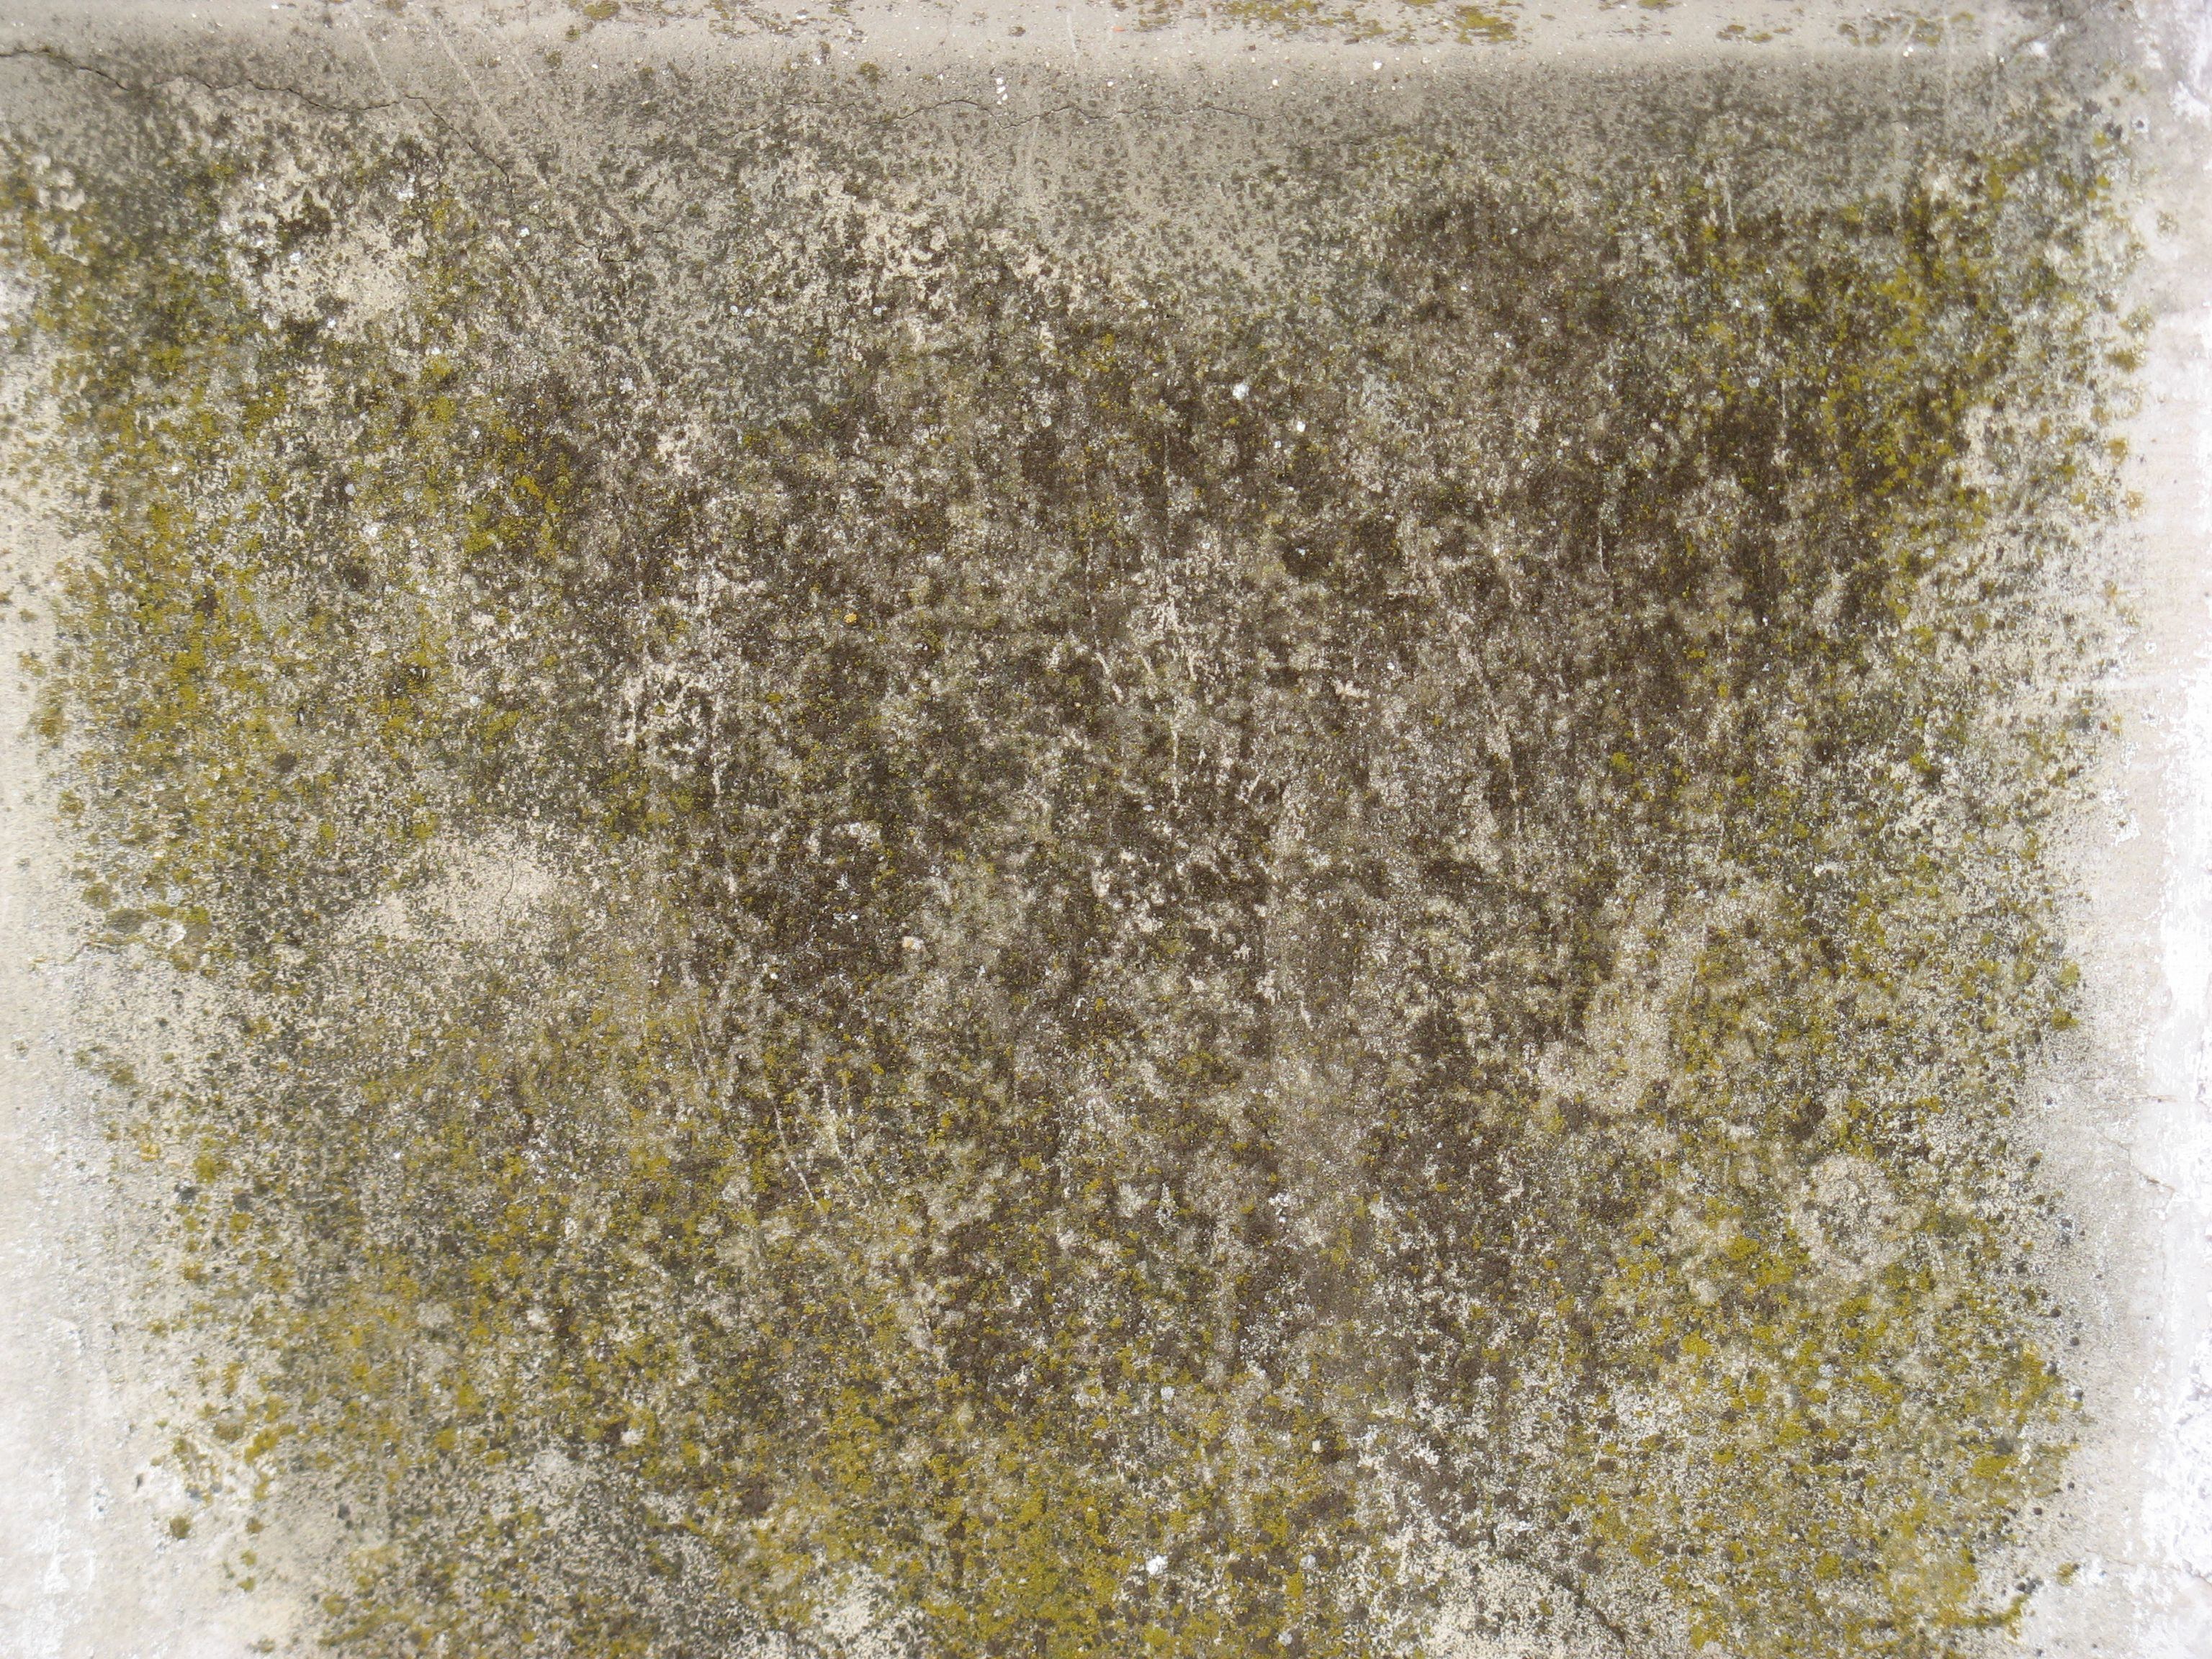 High walls free concrete grunge texture dirt wall for Removing dirt stains from concrete